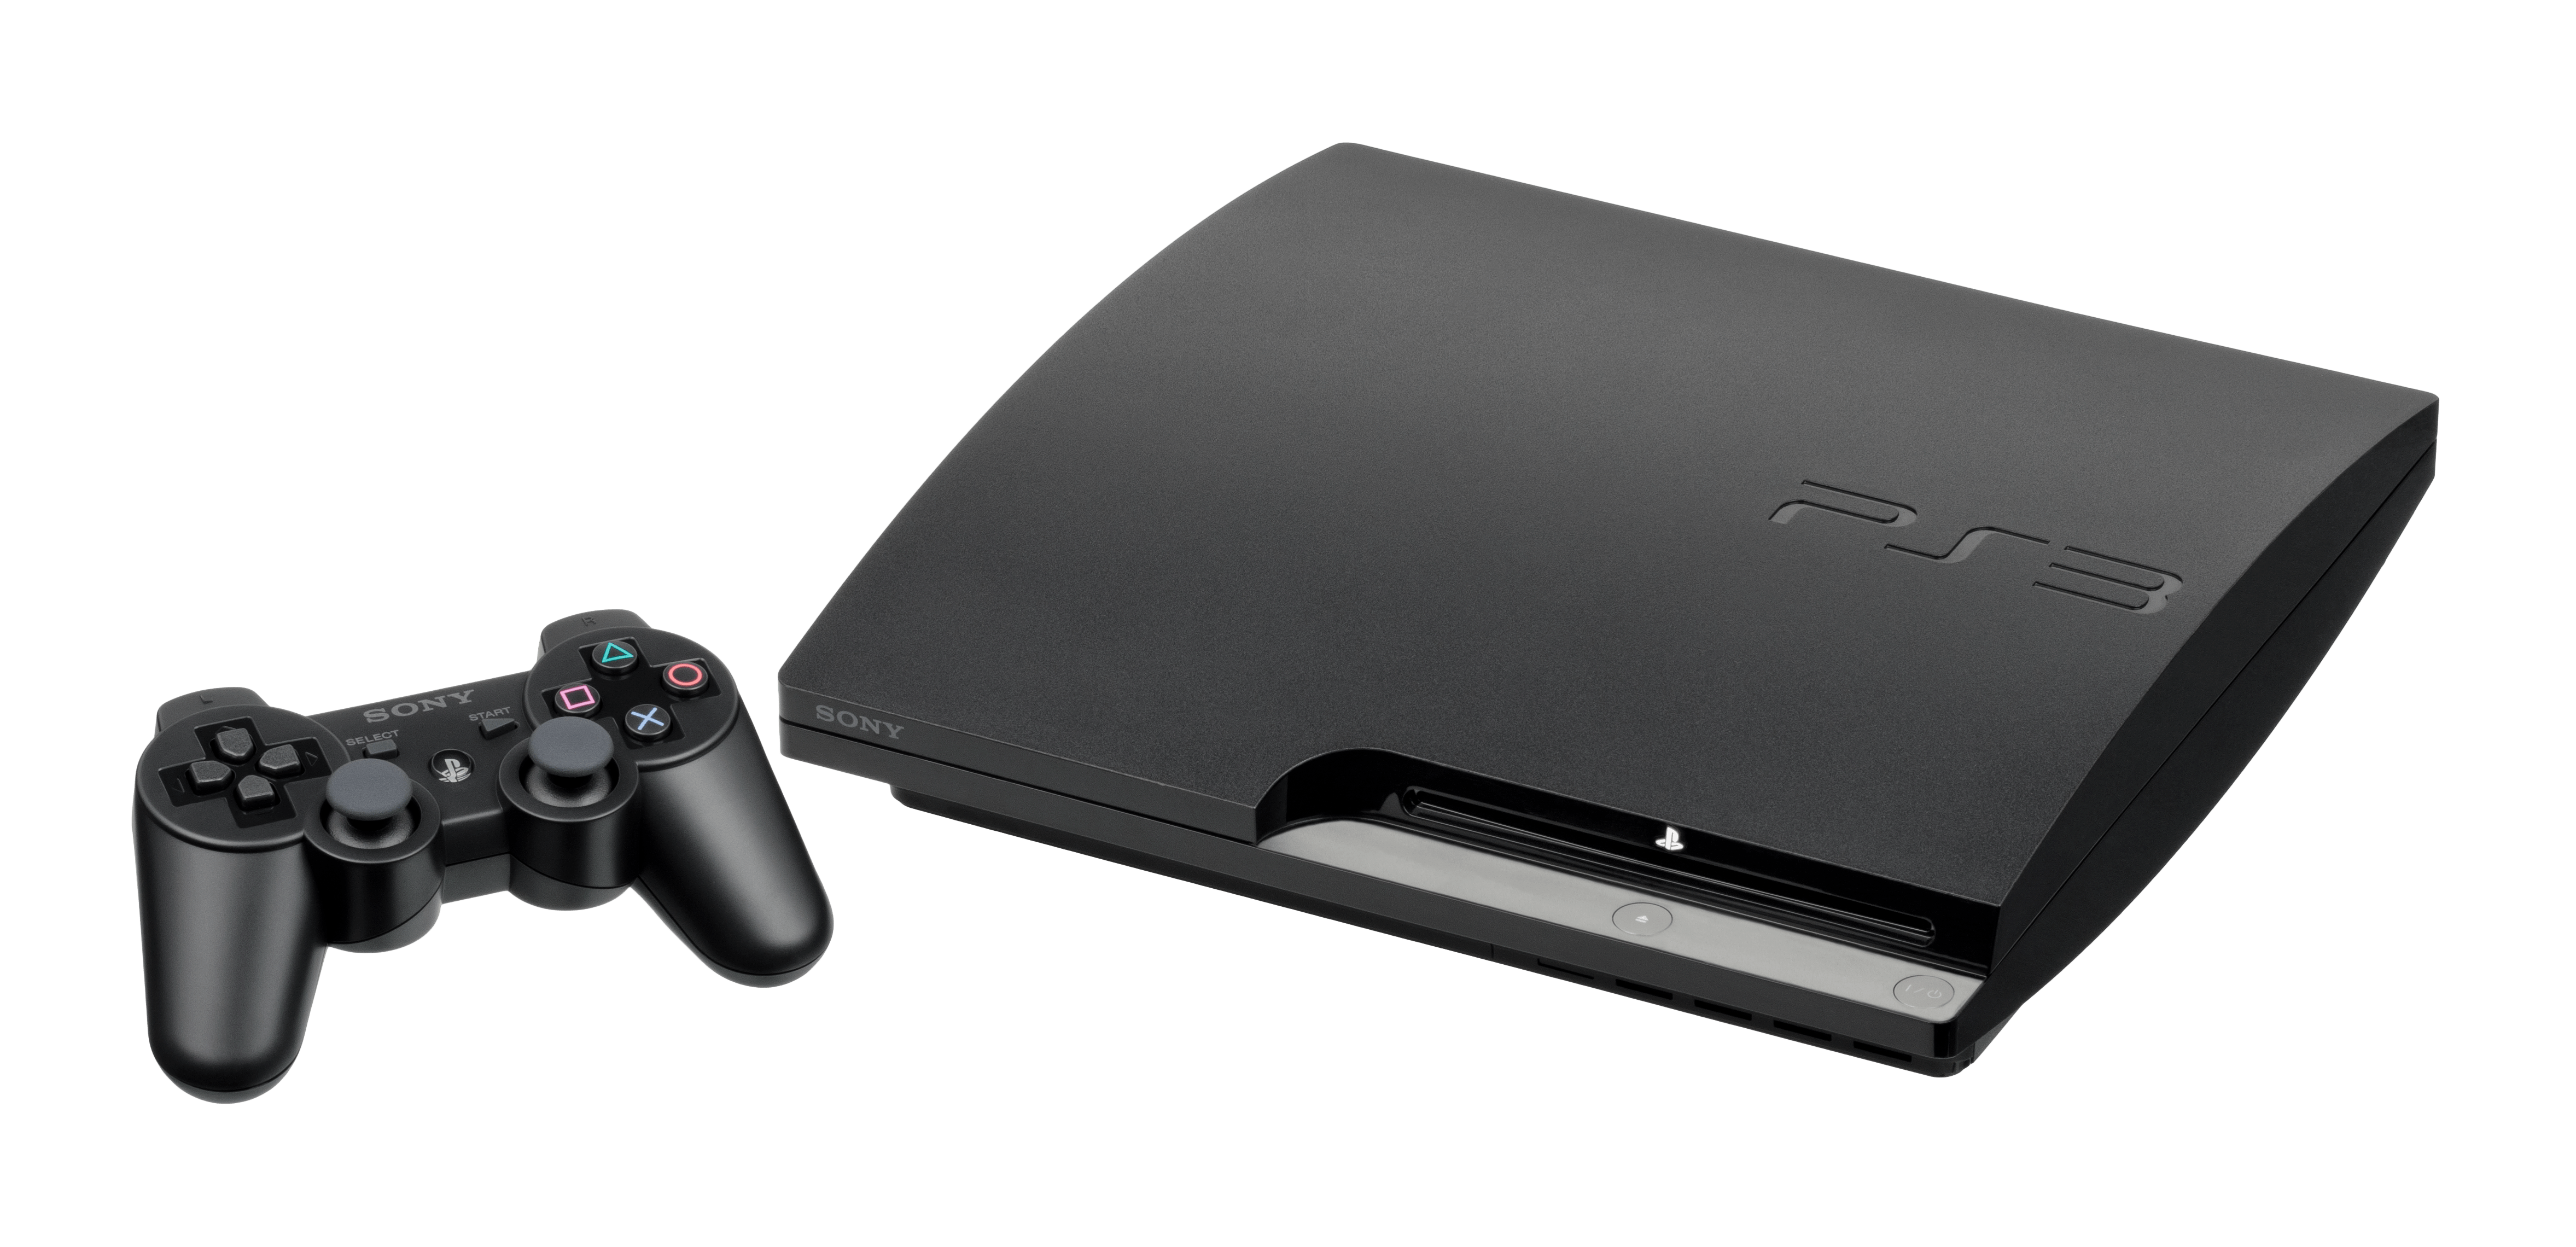 Playstation Contact File Ps3 Slim Console Png Wikipedia